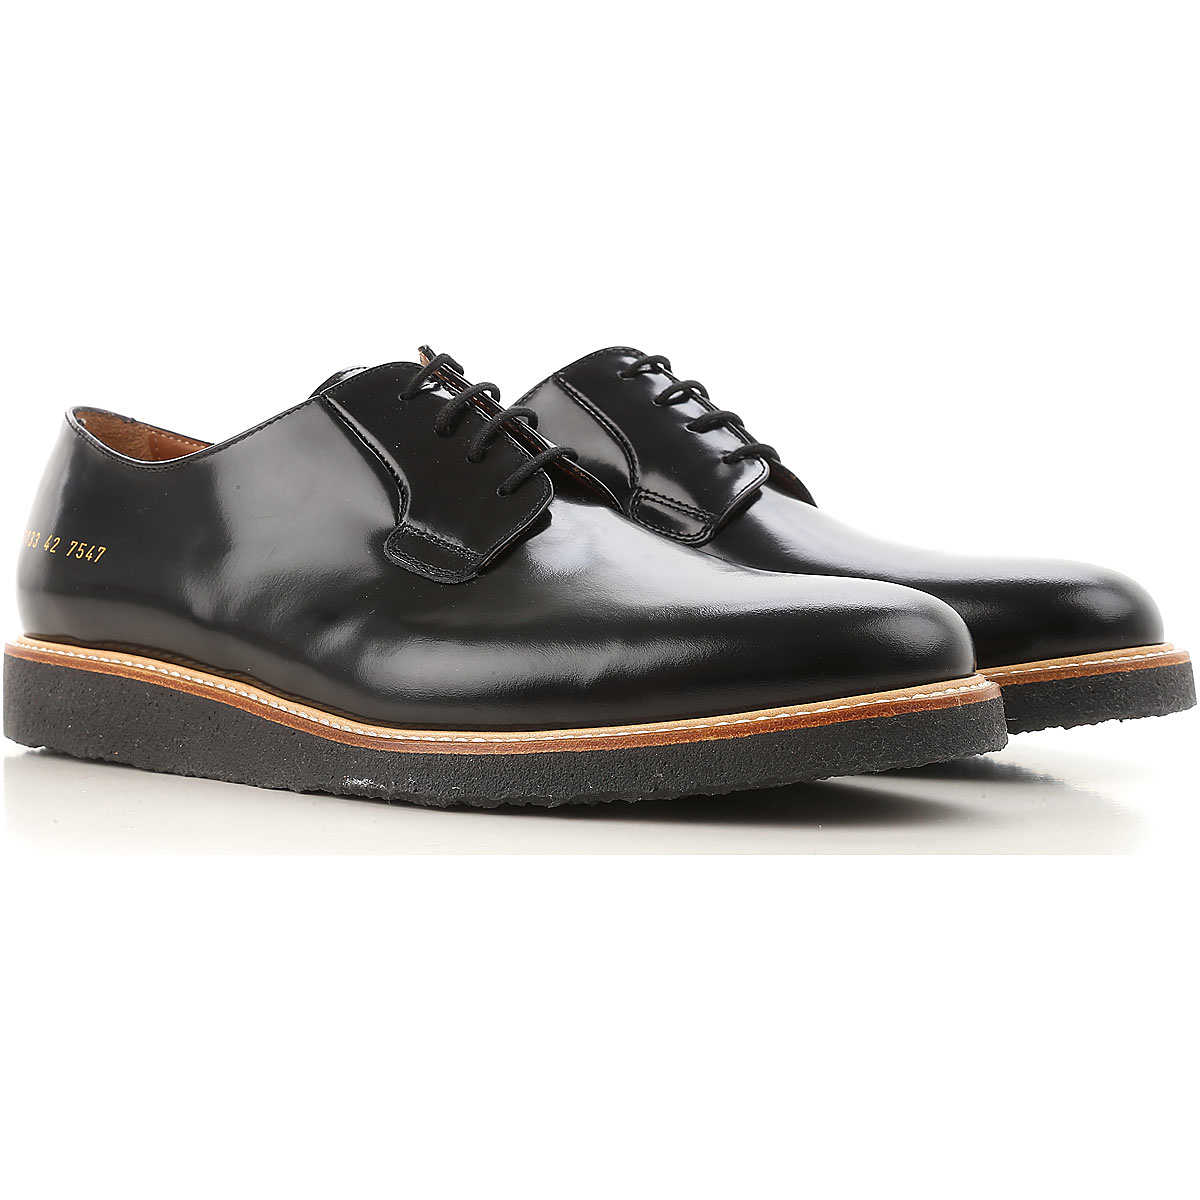 Common Projects Lace Up Shoes for Men Oxfords 5.5 6.5 7 8 9 Derbies and Brogues On Sale UK - GOOFASH